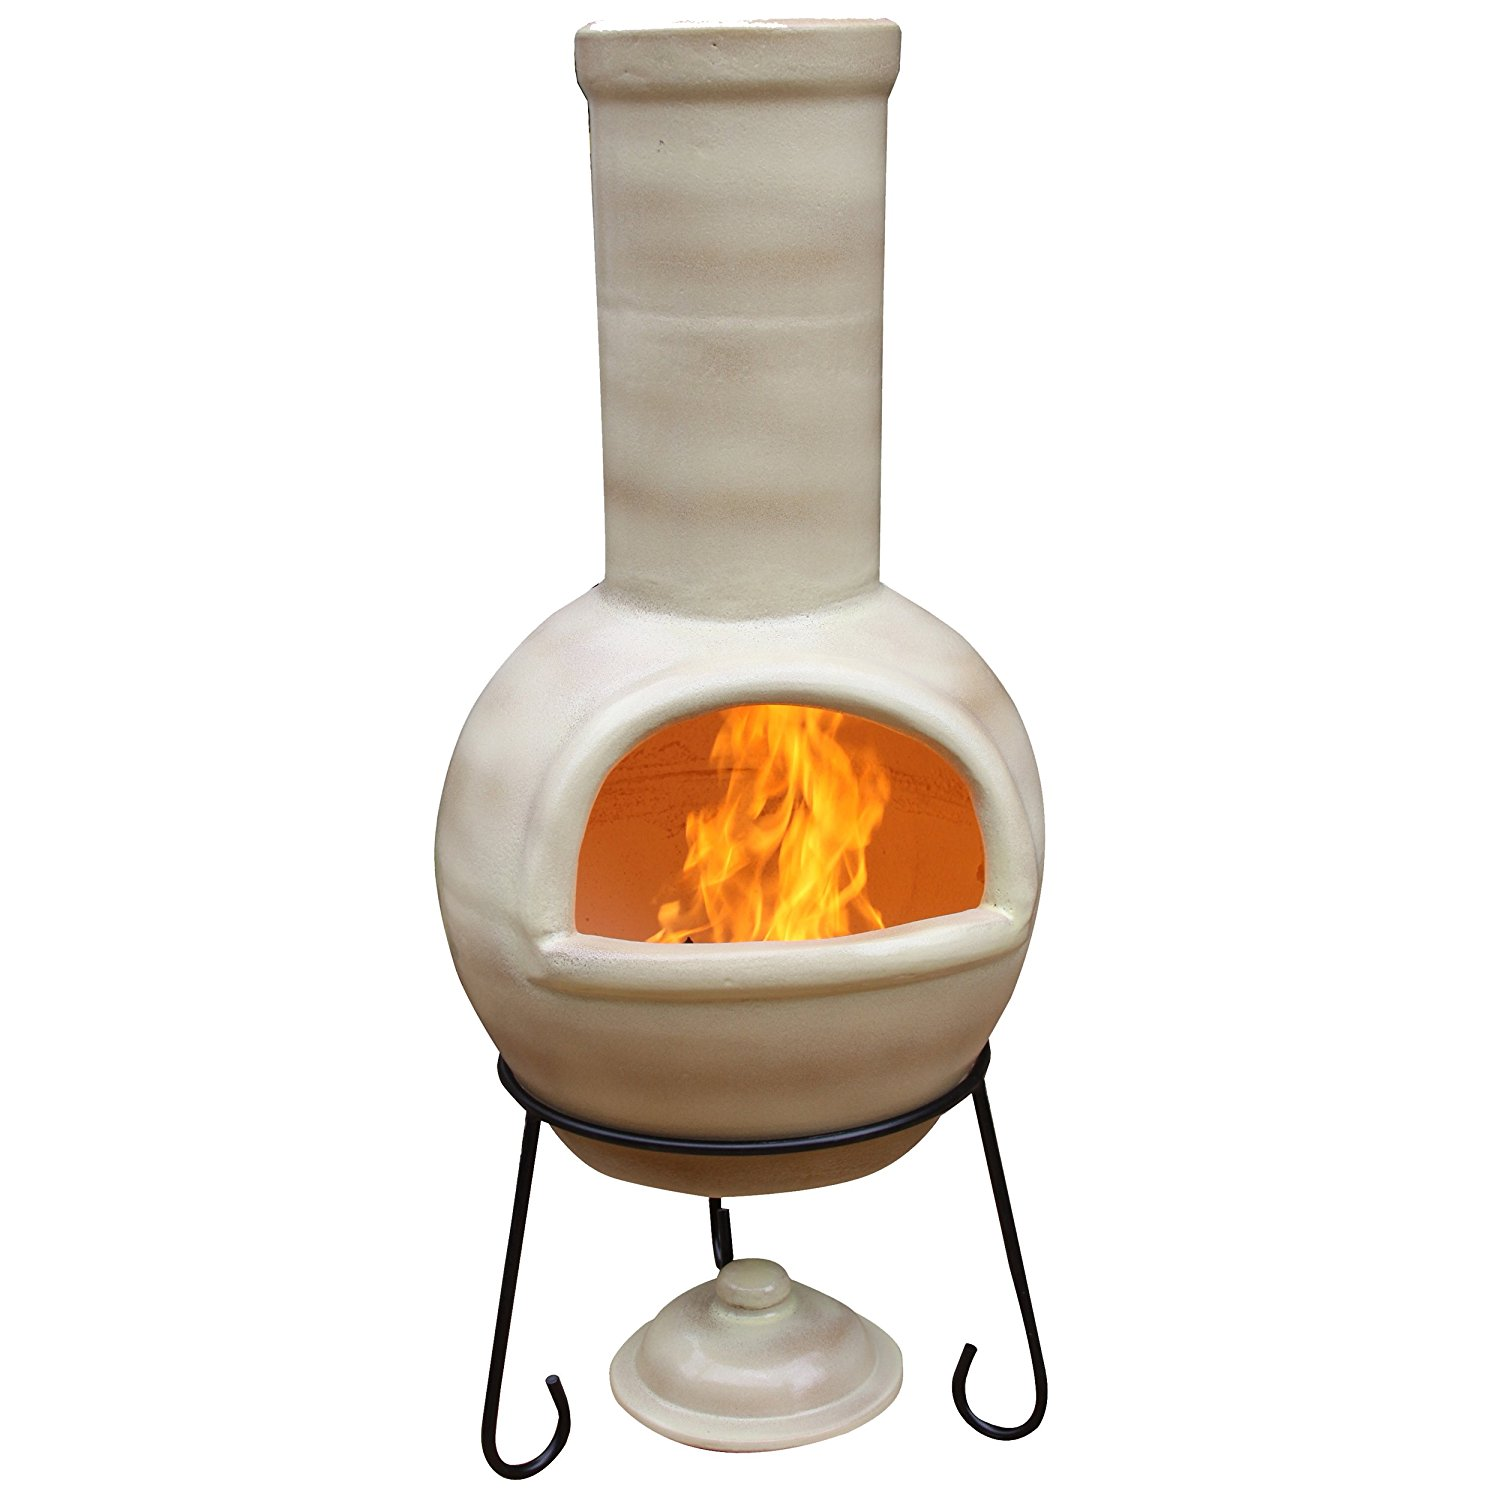 Want to Buy a Chiminea Fire Pit or Ethanol Fireplace